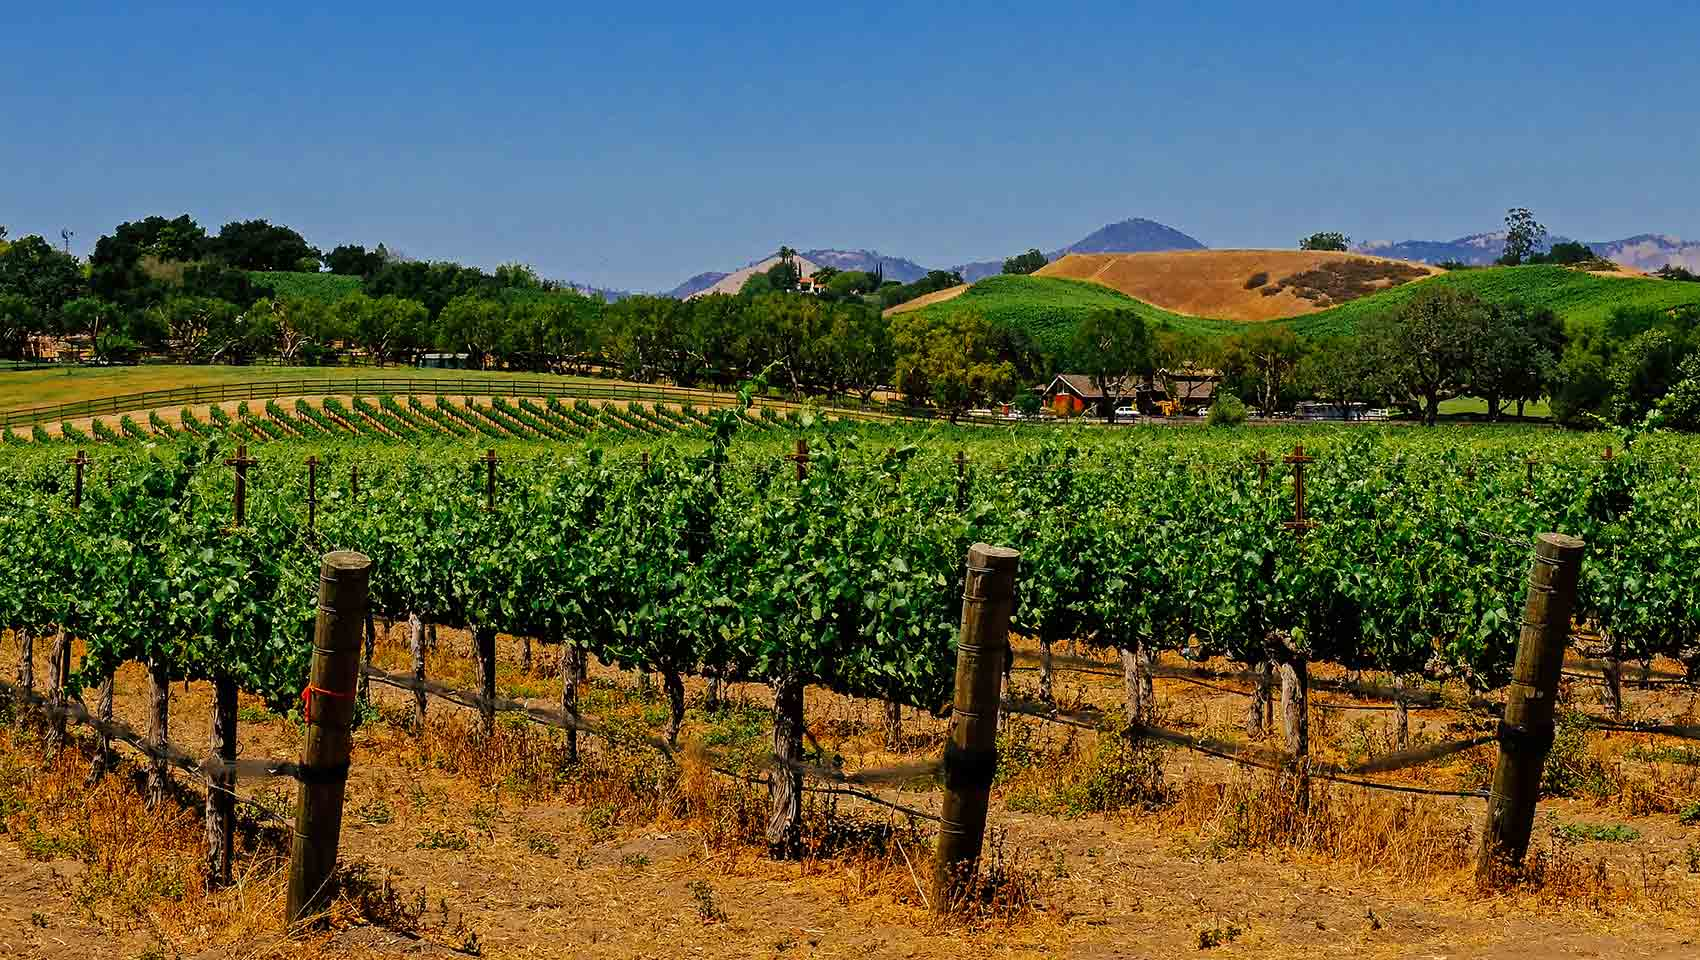 Washington wine country near kimpton hotels